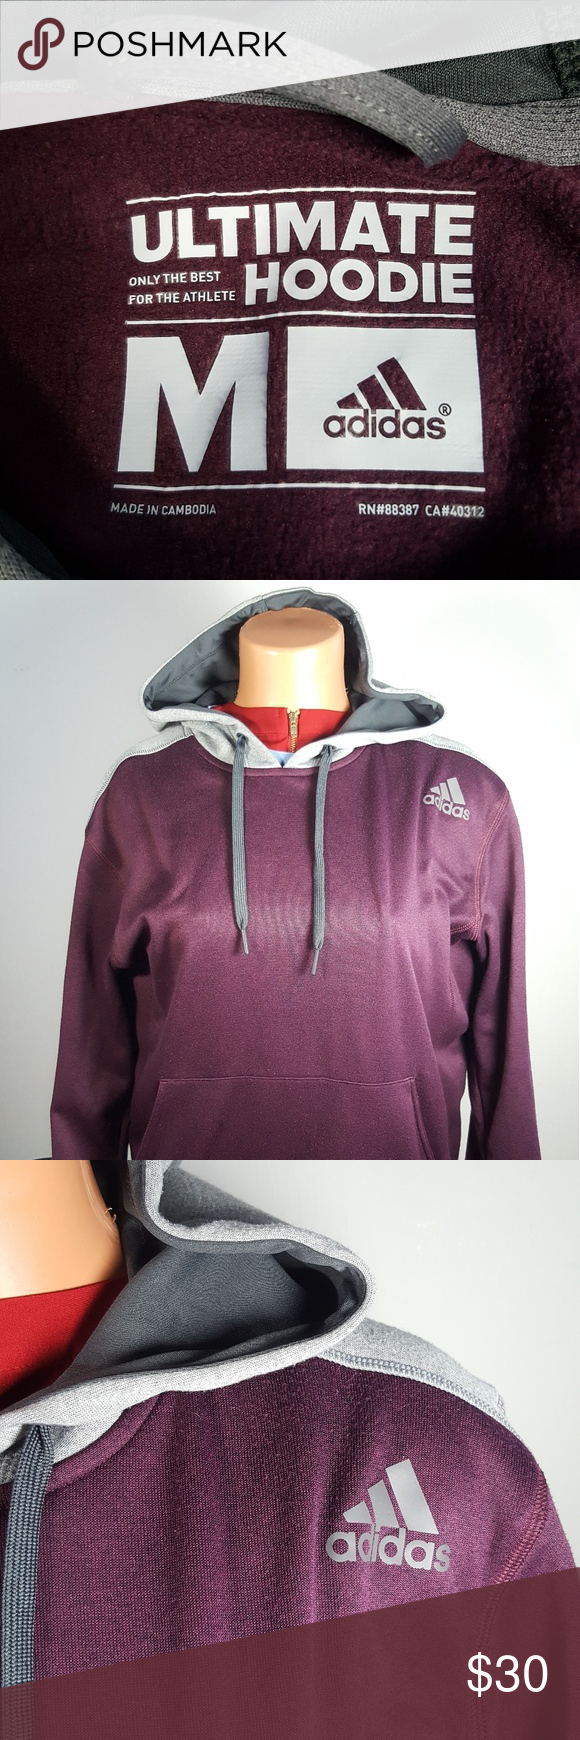 f8daf0457565 Adidas Hoodie Great condition Adidas Climawarm lightweight pullover  Burgundy red   gray adidas Jackets   Coats Lightweight   Shirt Jackets